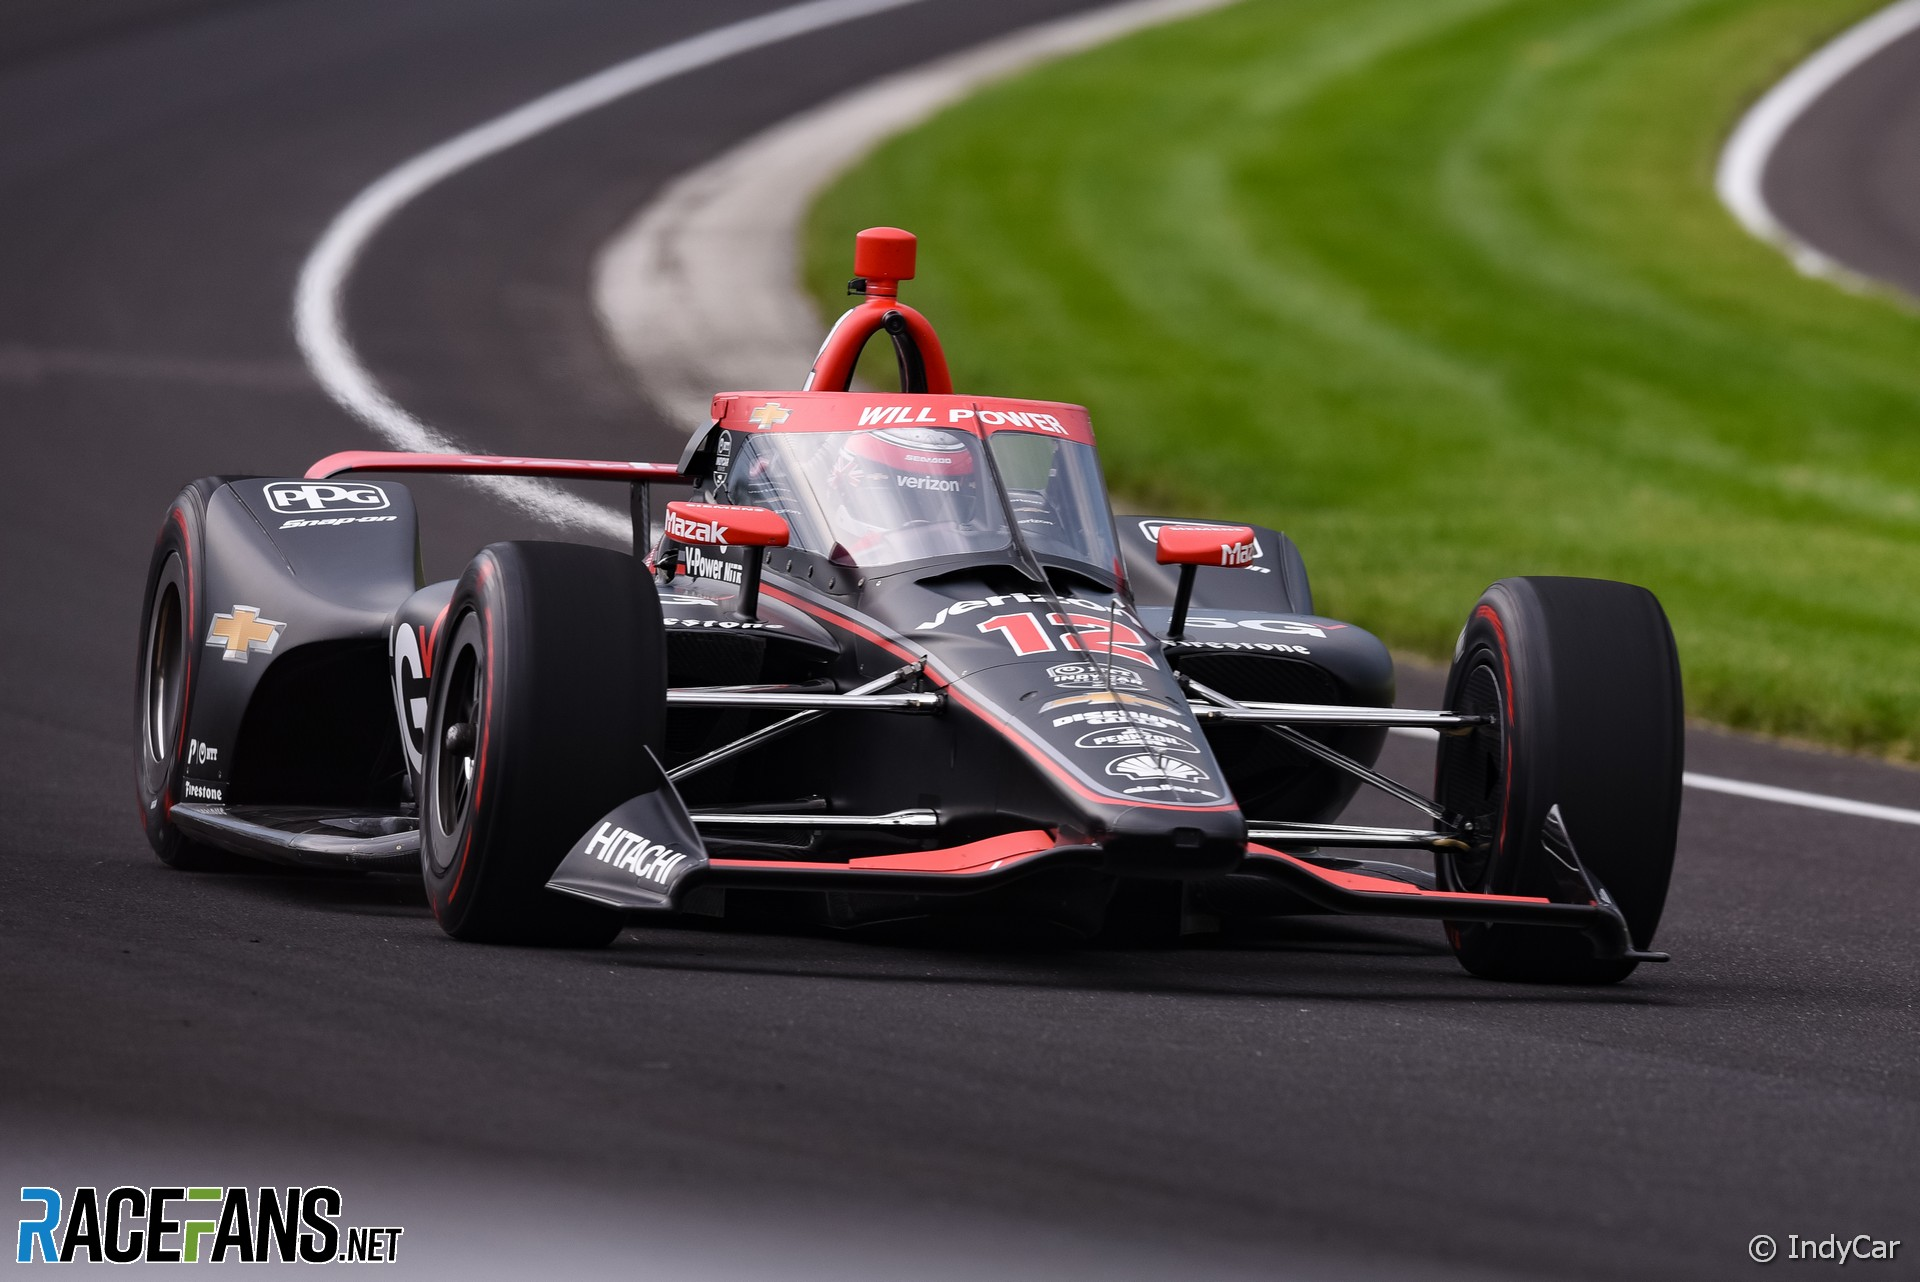 Will Power, Penske, IndyCar, Indianapolis Motor Speedway, 2021